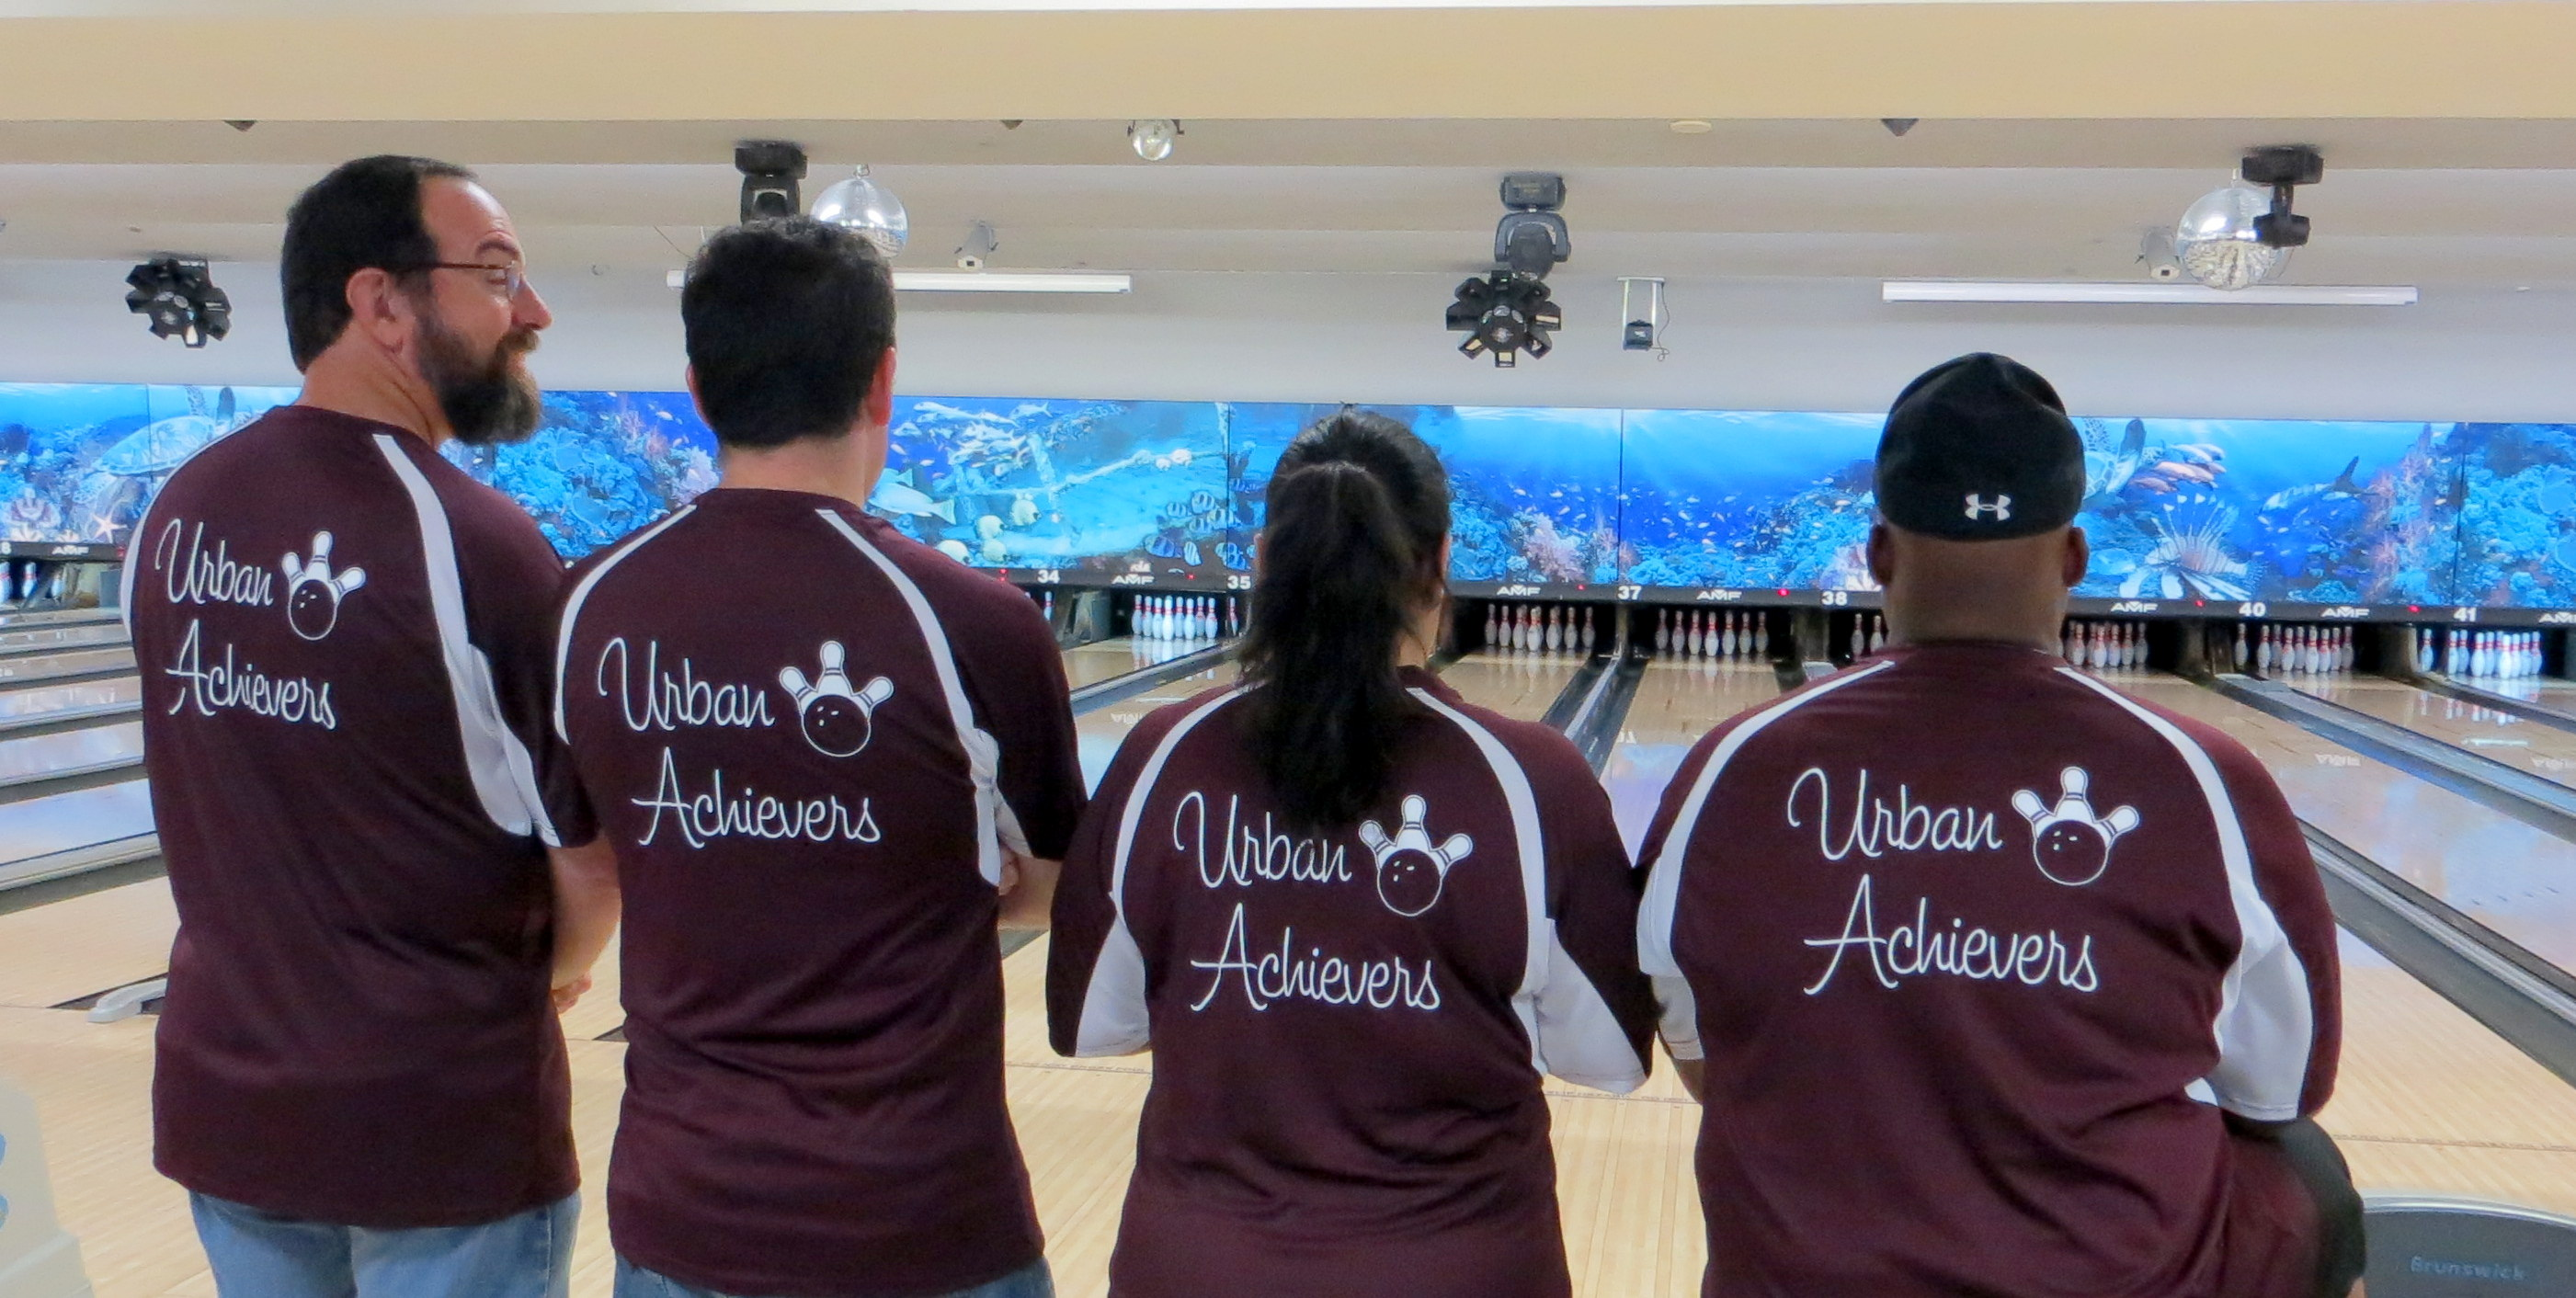 Custom T Shirts For The Urban Achievers Bowling Team Shirt Design